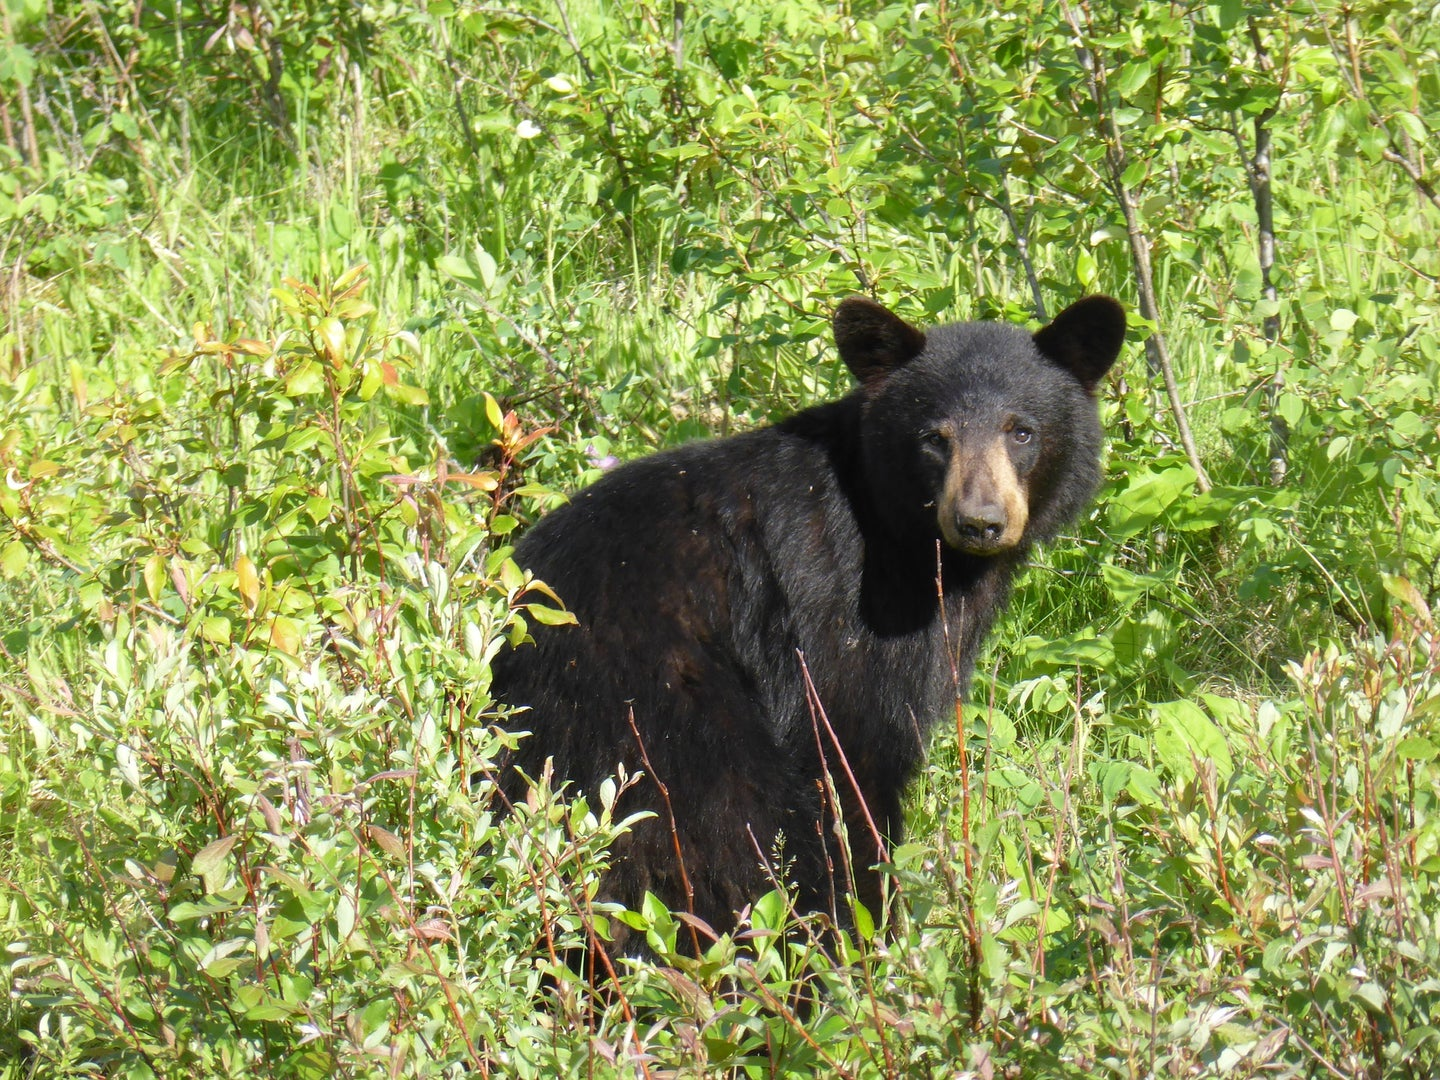 An emergency New Jersey black bear hunt needs approval by the state governor.